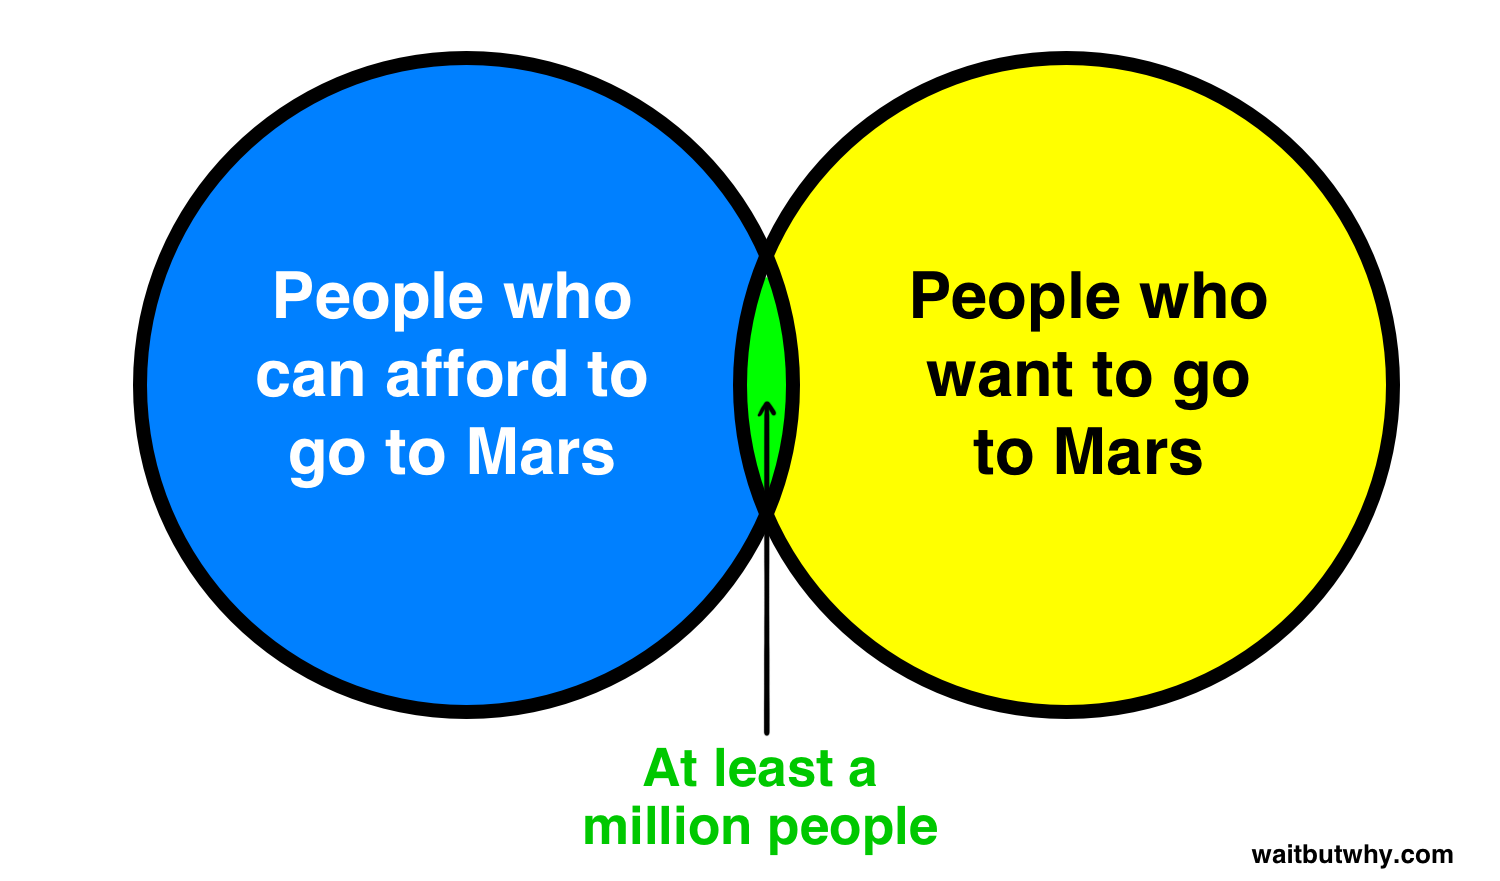 Blue circle: People who can afford to go to Mars. Yellow circle: People who want to go to Mars. Green intersection: At least a million people